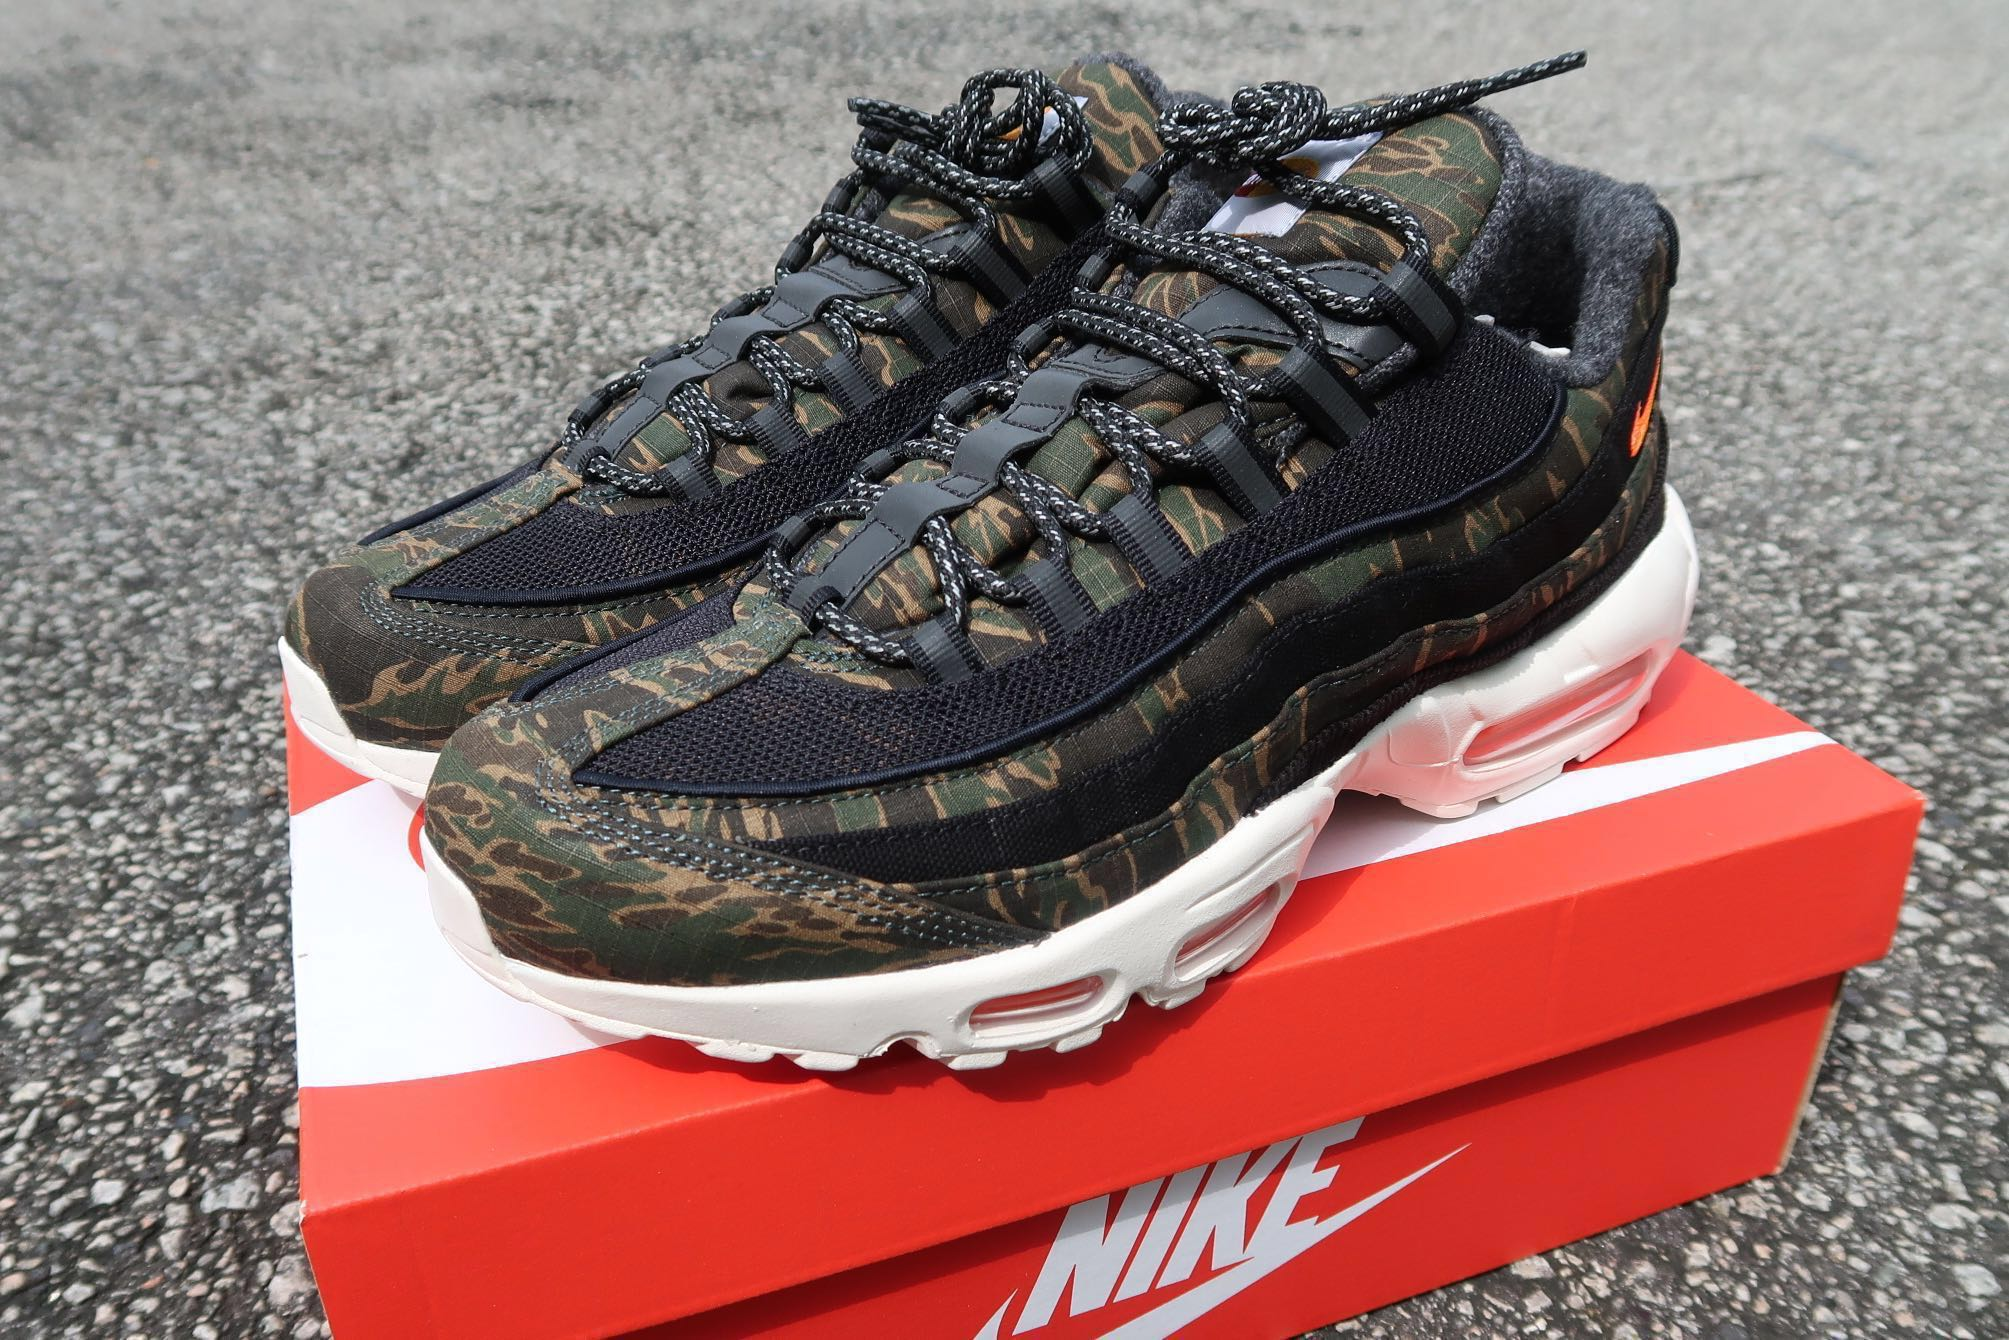 super popular 67644 c5bec Nike Air Max 95 Carhartt WIP Camo, Men s Fashion, Footwear, Sneakers on  Carousell